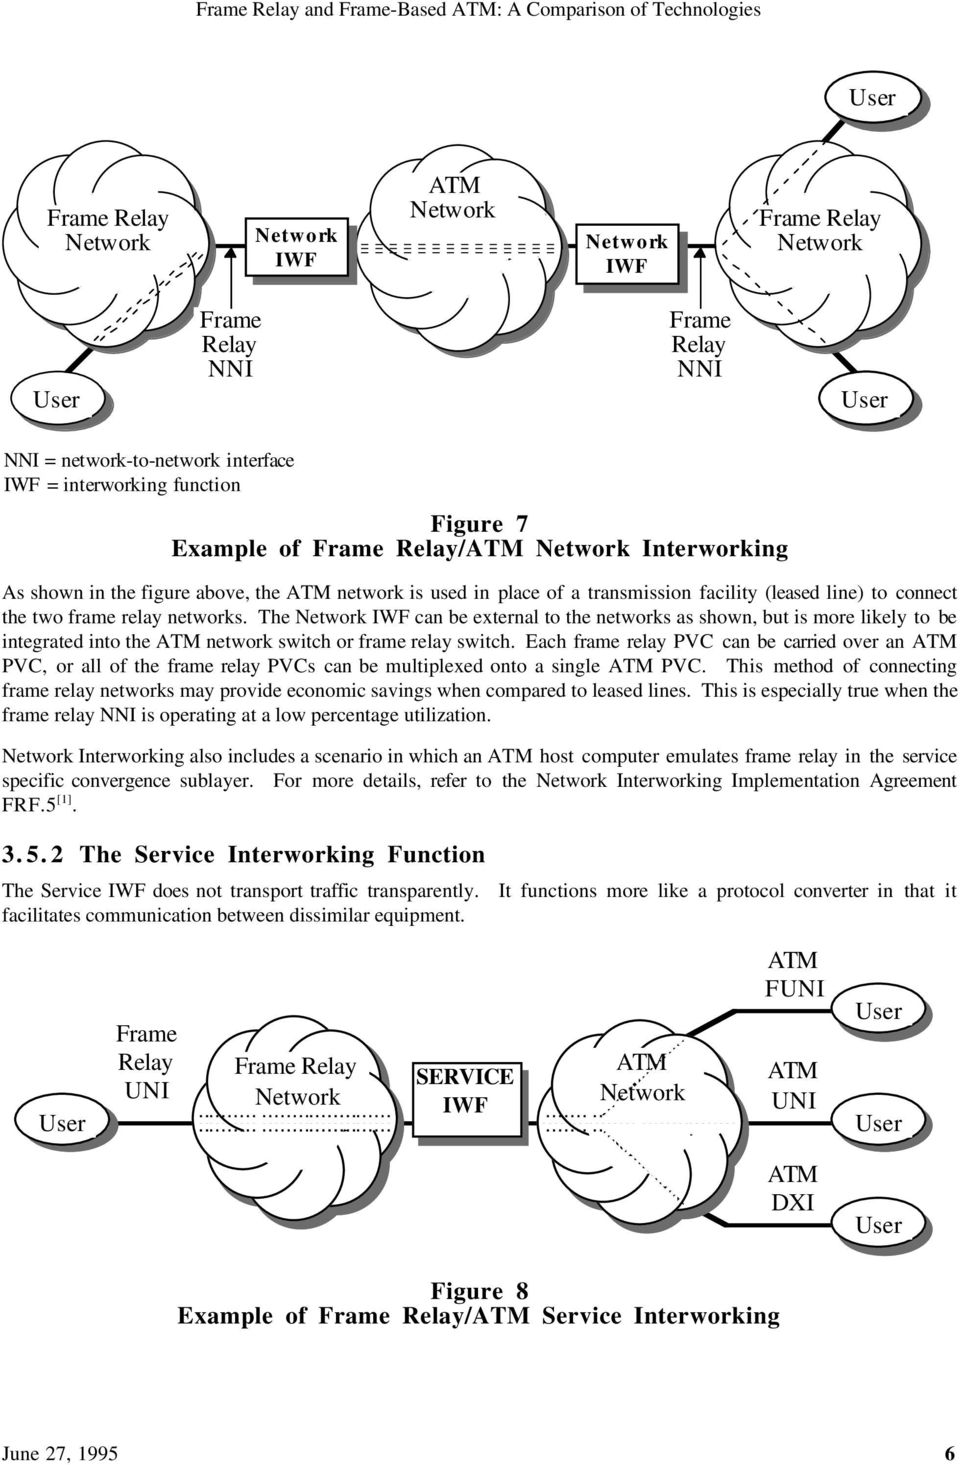 Frame Relay And Based Atm A Comparison Of Technologies Pdf Switch Example The Iwf Can Be External To Networks As Shown But Is More Likely